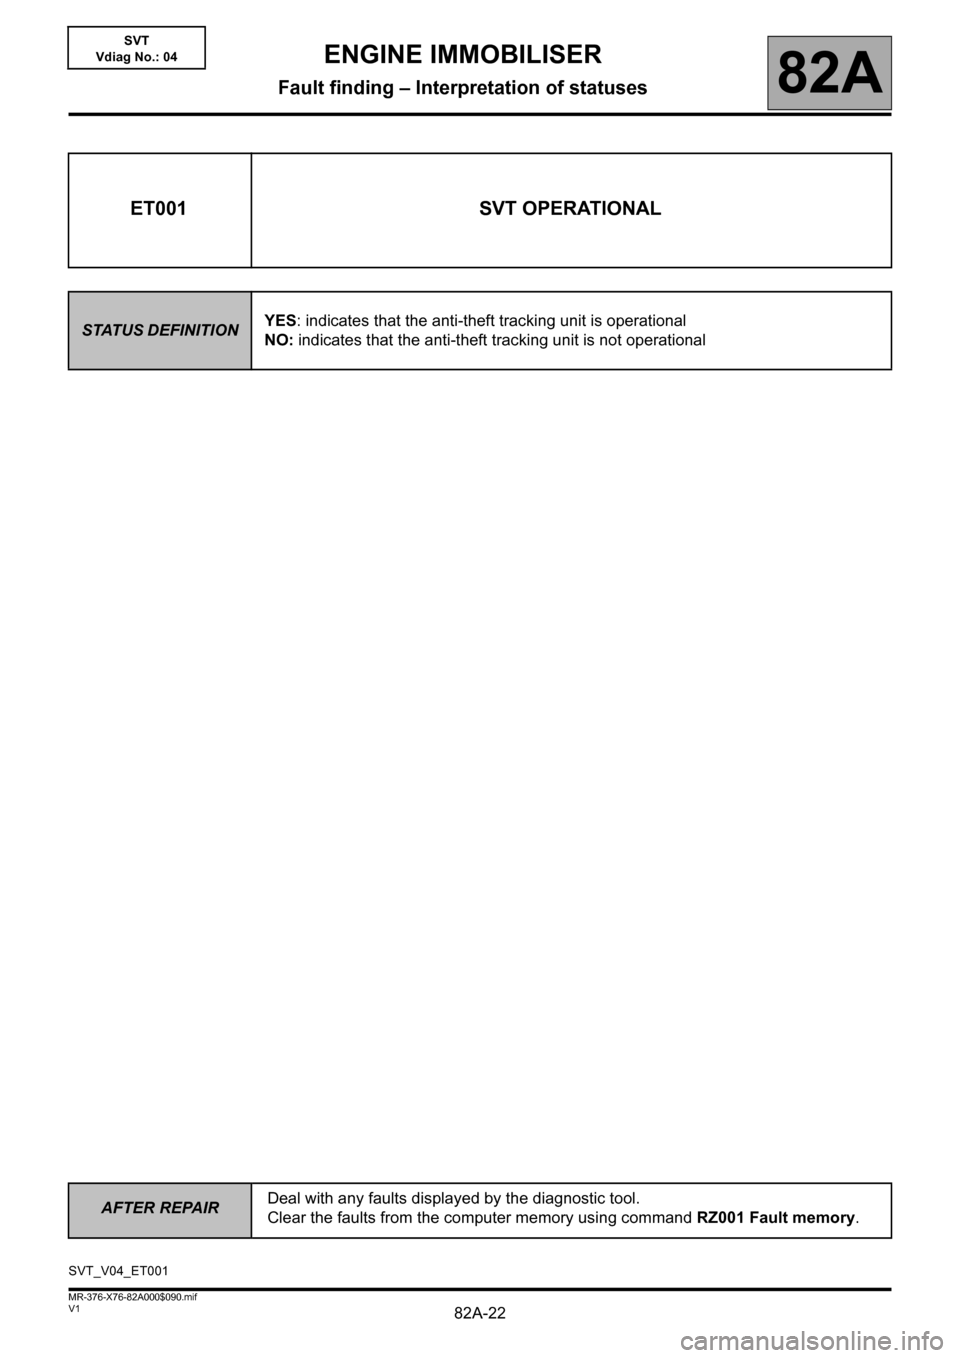 RENAULT KANGOO 2013 X61 / 2.G Engine Immobiliser Owners Manual 82A-22 AFTER REPAIRDeal with any faults displayed by the diagnostic tool. Clear the faults from the computer memory using command RZ001 Fault memory. V1 MR-376-X76-82A000$090.mif 82A SVT Vdiag No.: 04